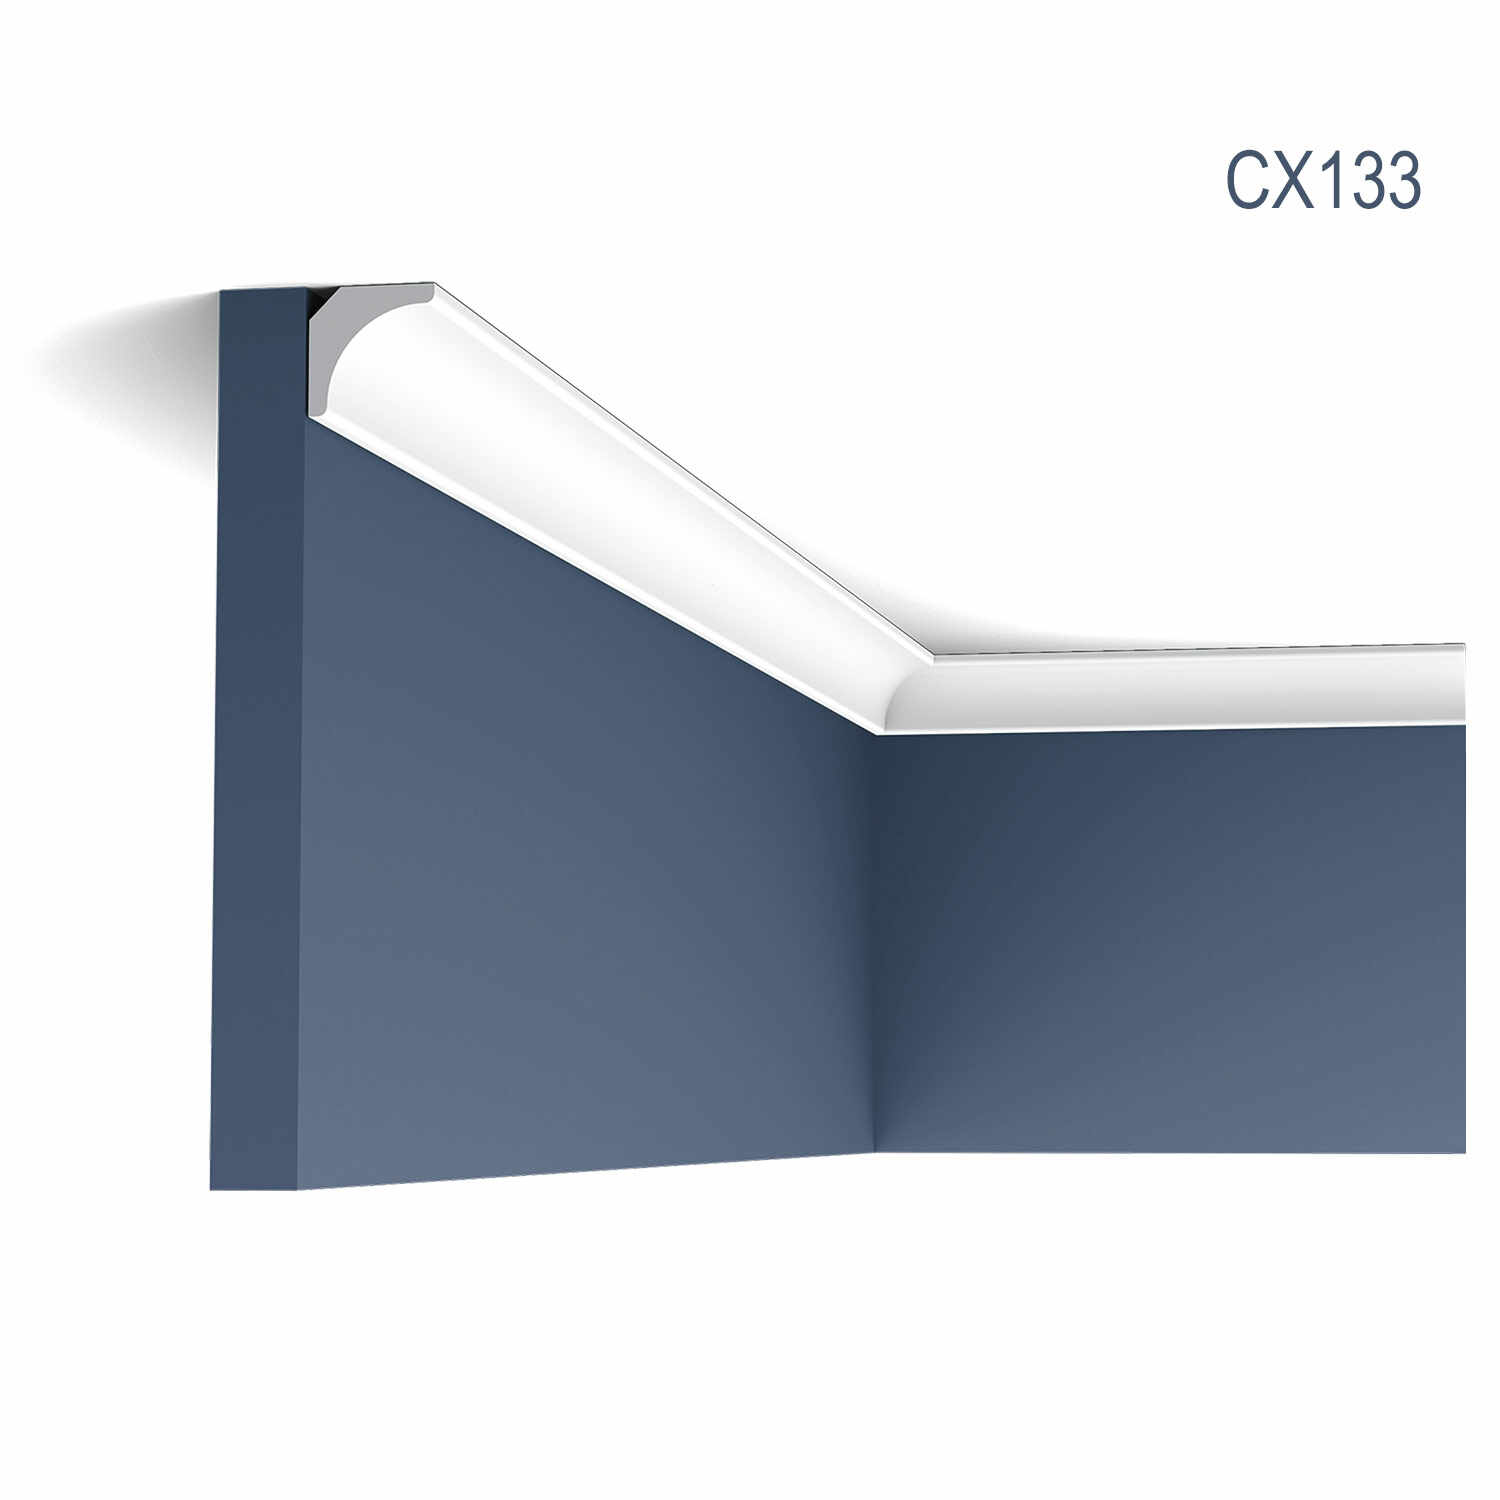 Cornisa Axxent CX133, Dimensiuni: 200 X 2 X 2 cm, Orac Decor